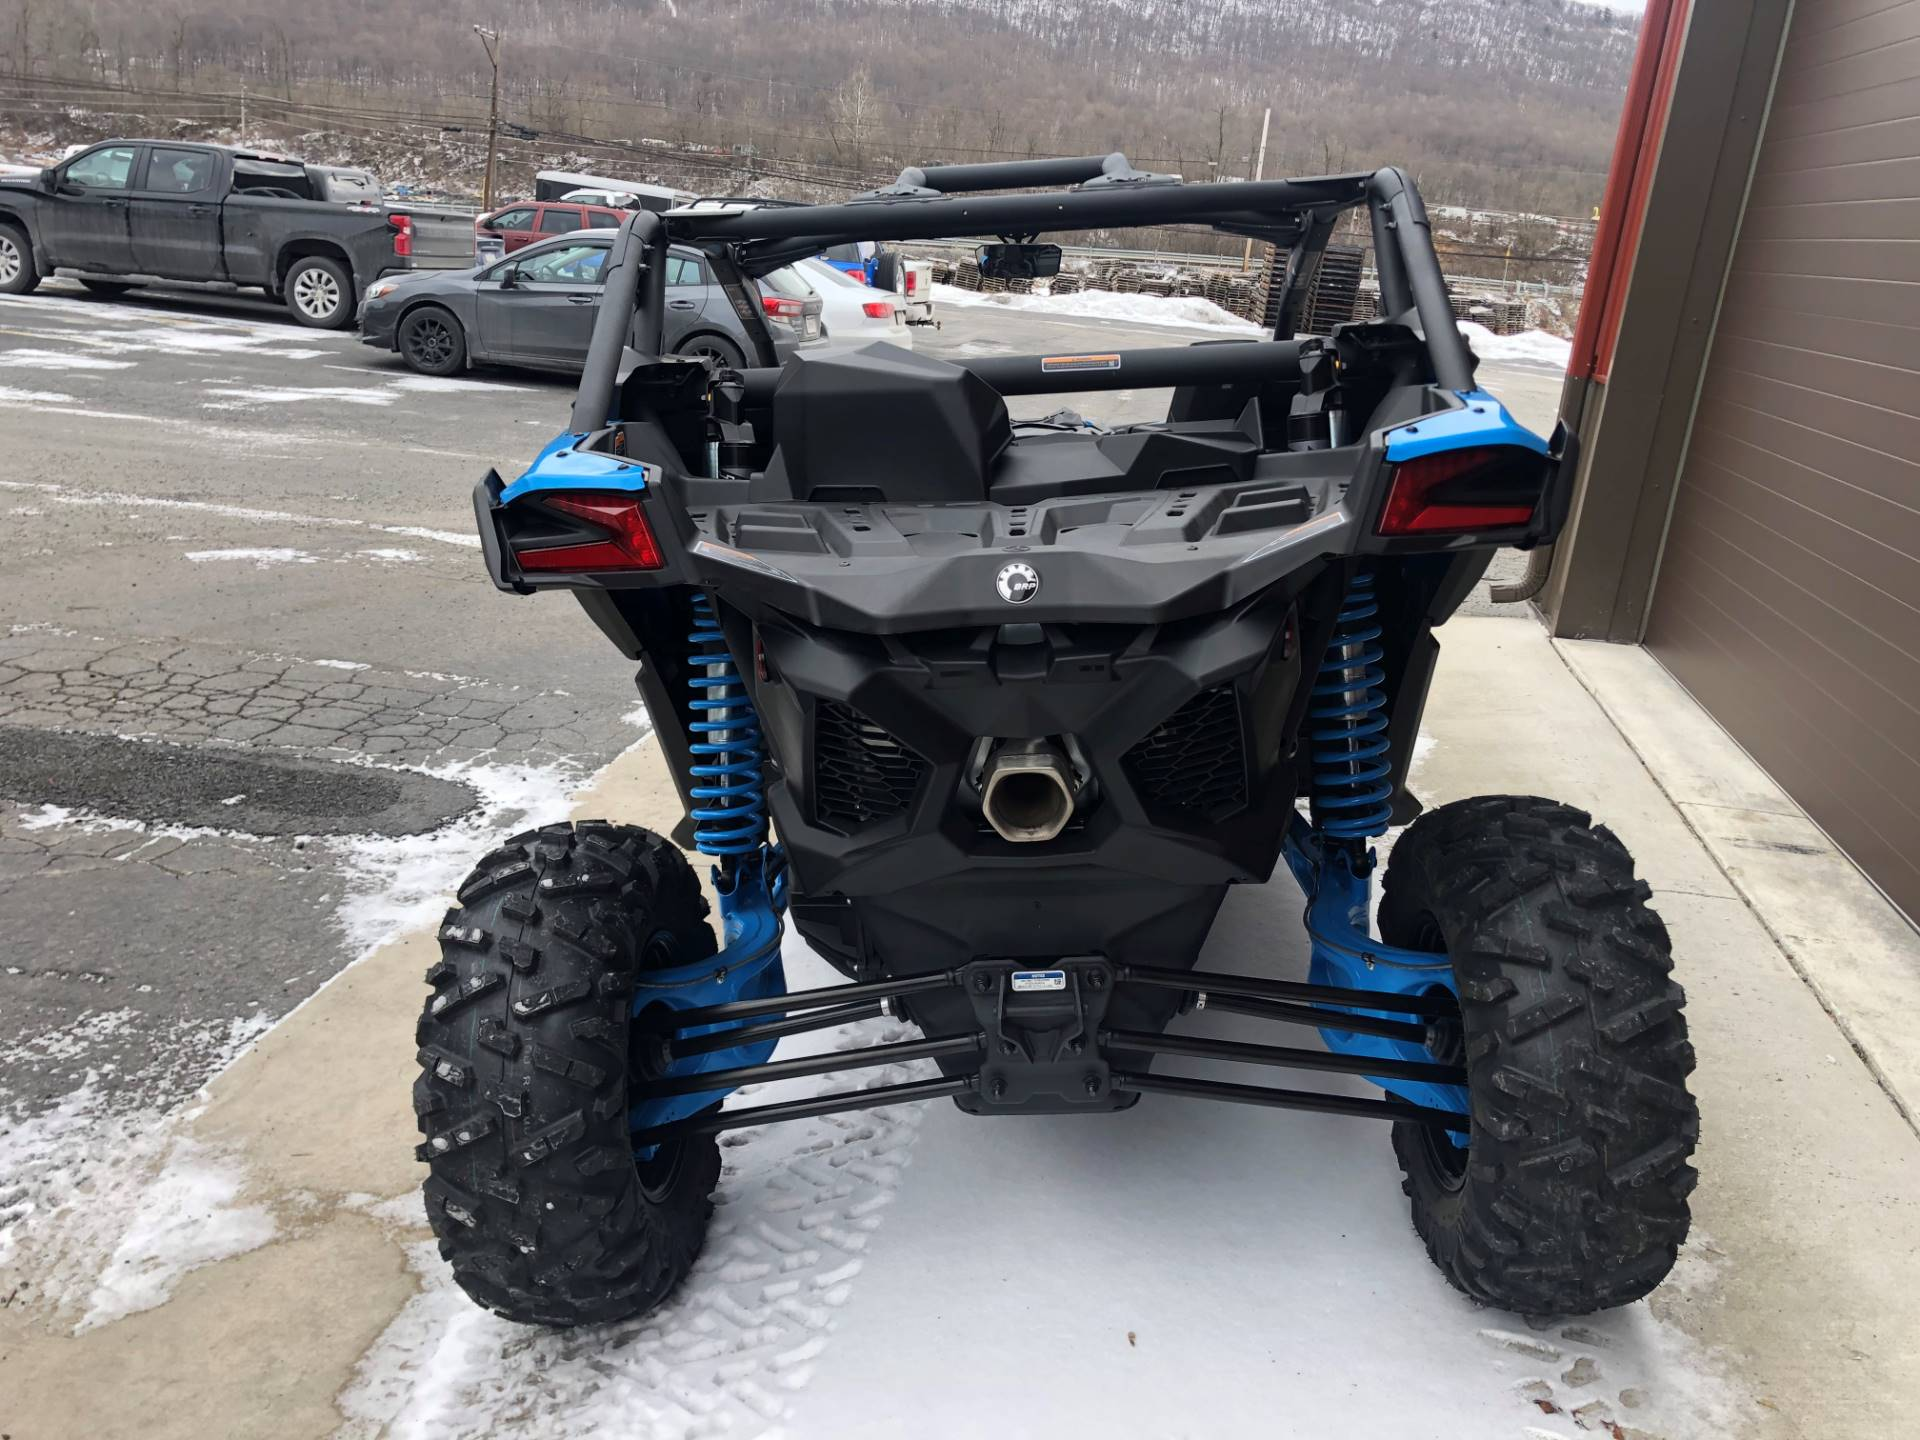 2021 Can-Am Maverick X3 DS Turbo in Tyrone, Pennsylvania - Photo 6